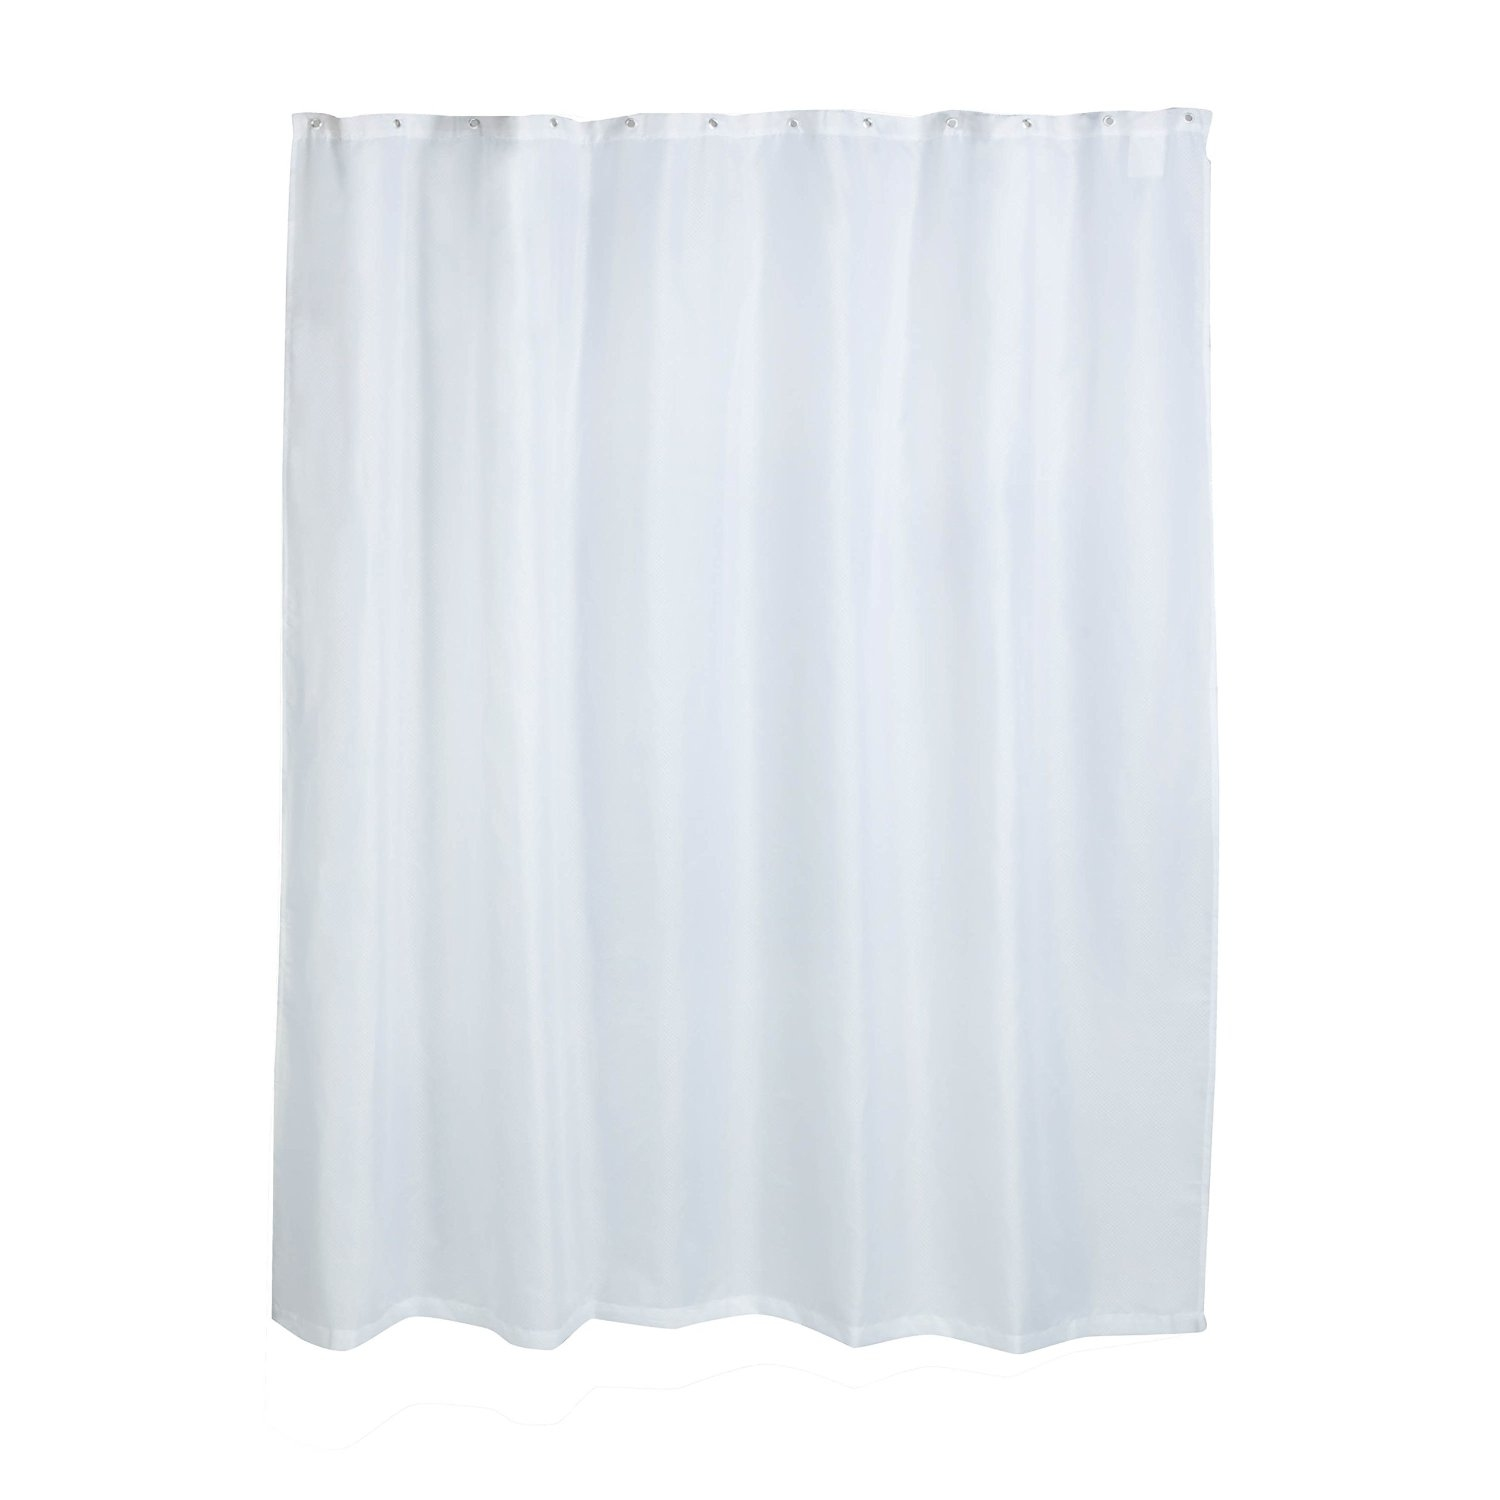 Honey Can Do Curved Rod Vinyl Shower Curtain Liner